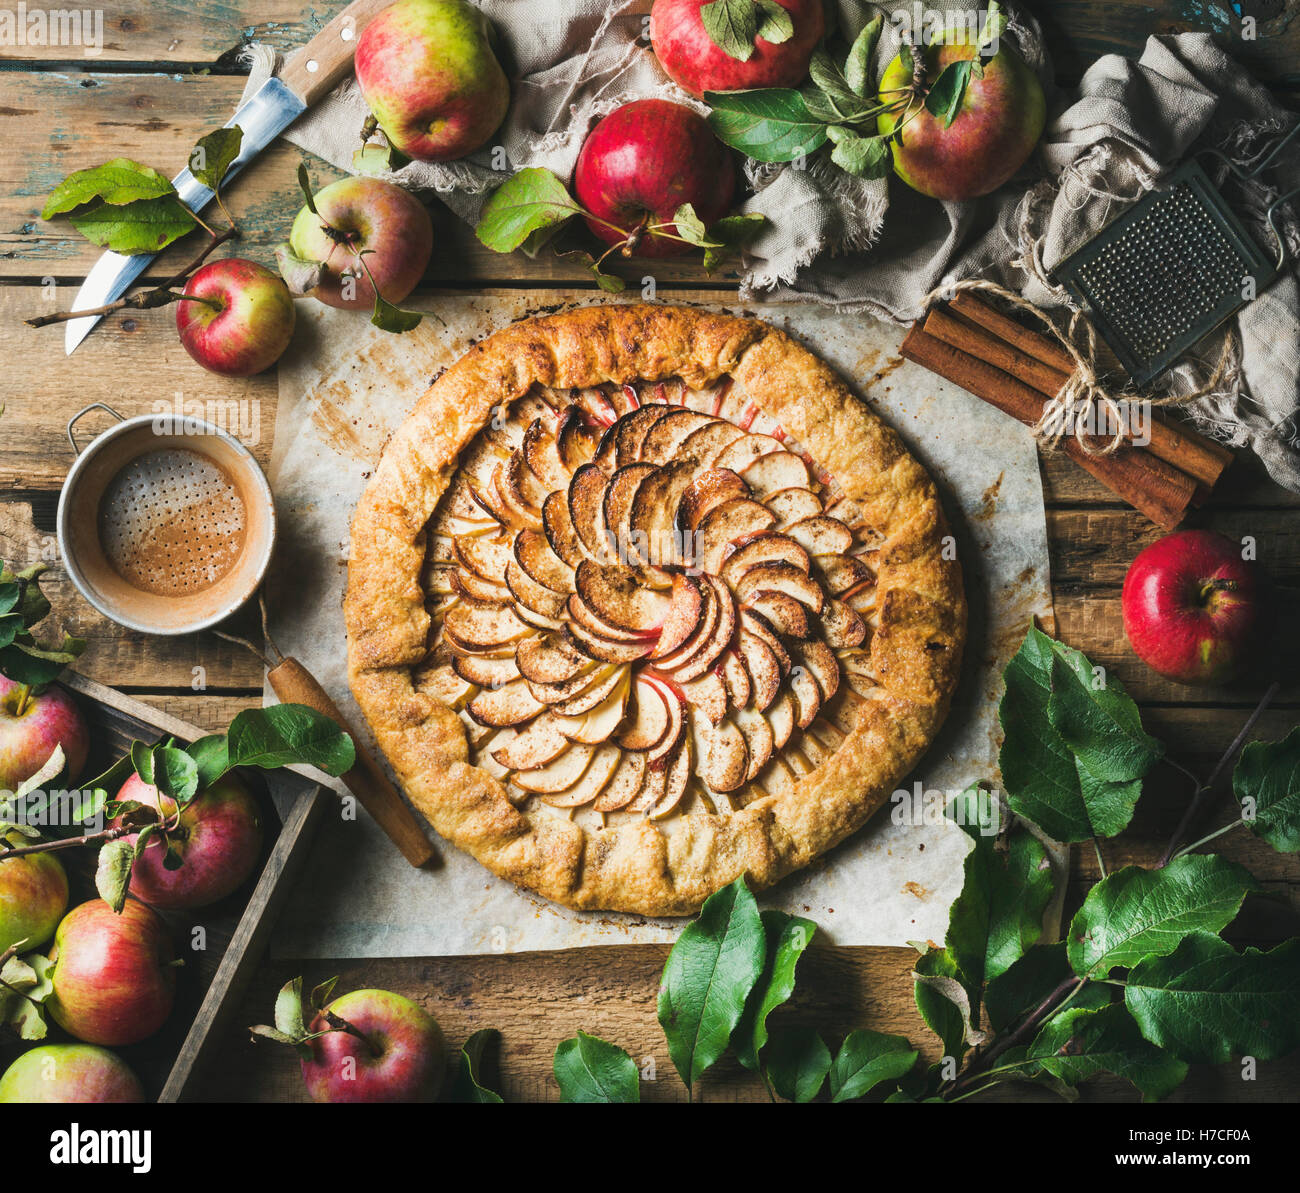 Apple crostata pie with cinnamon served with fresh garden apples with leaves on rustic wooden background, top view, Stock Photo